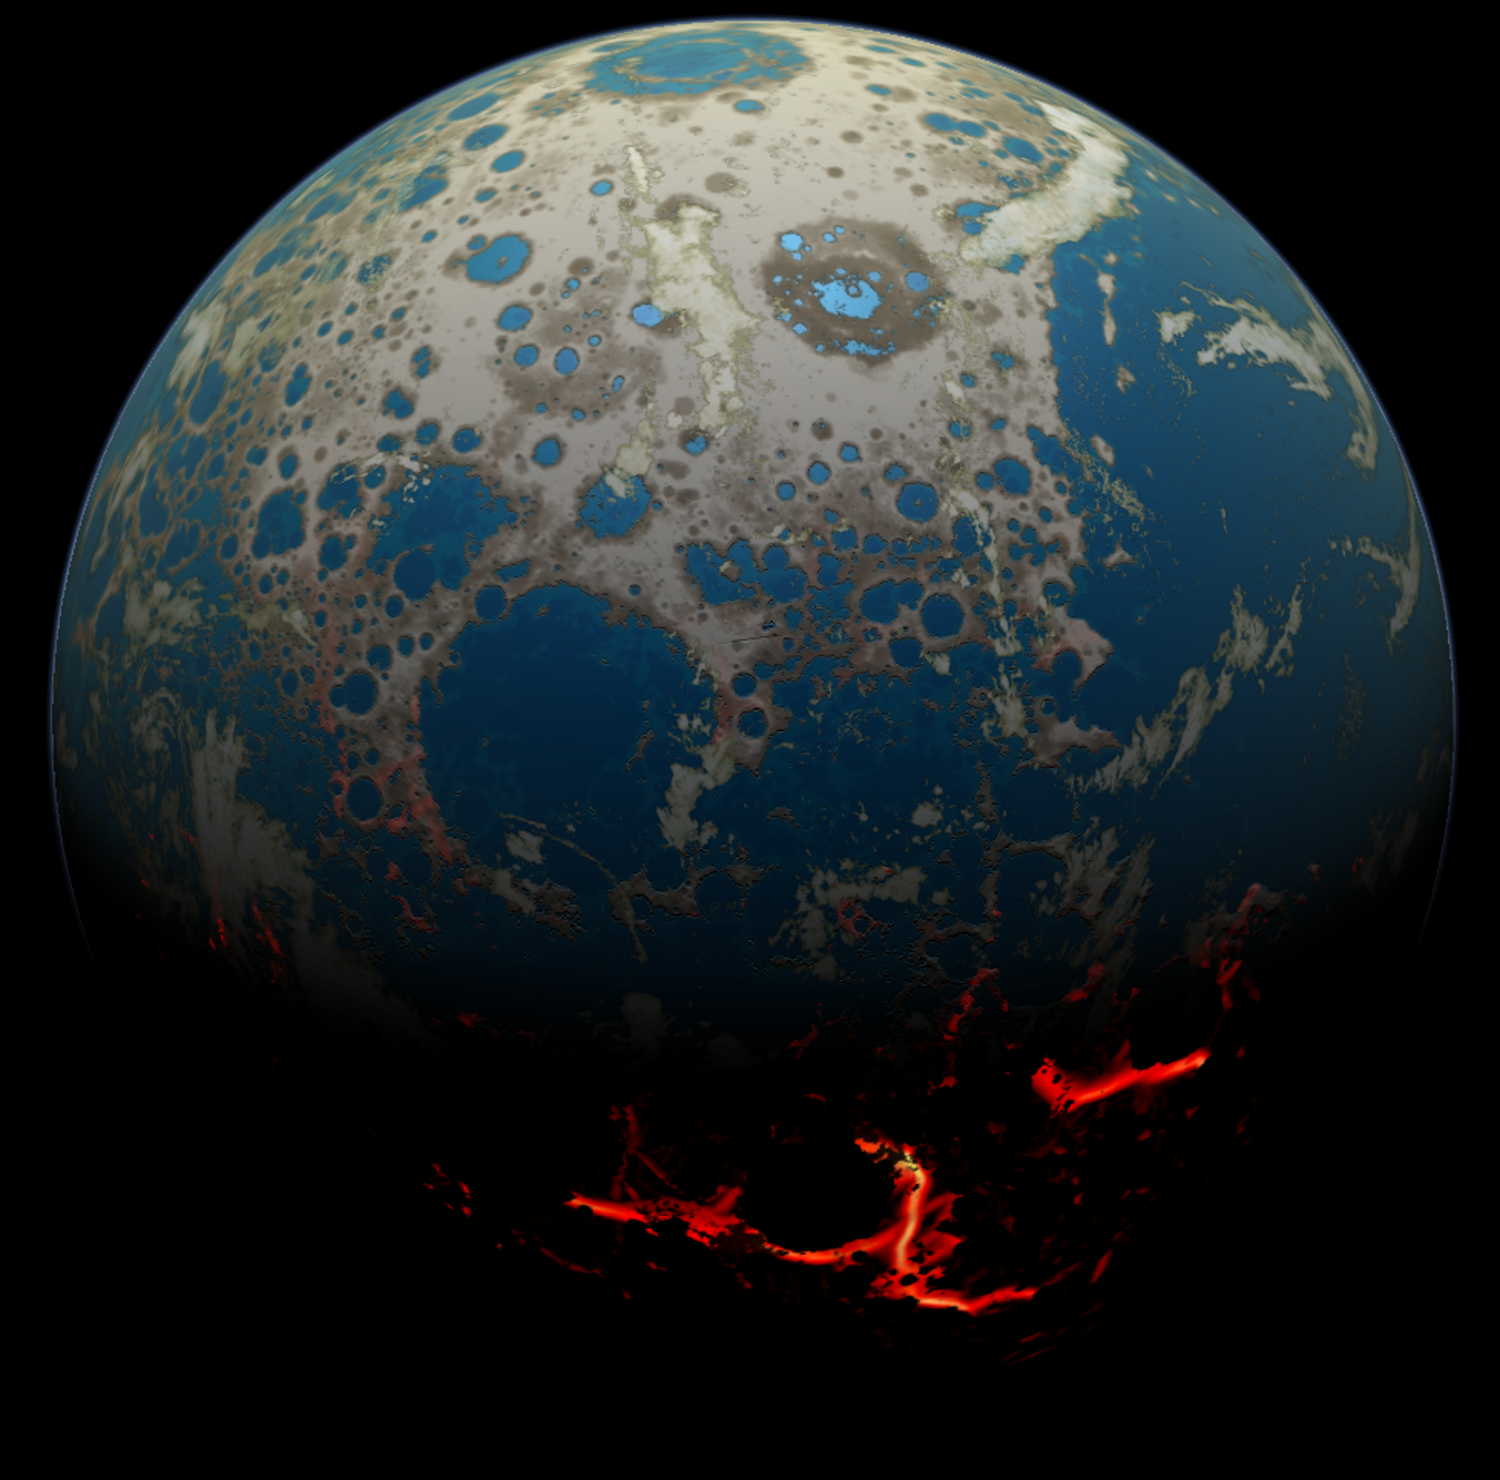 News - NASA simulation shows the heavy pummeling ancient